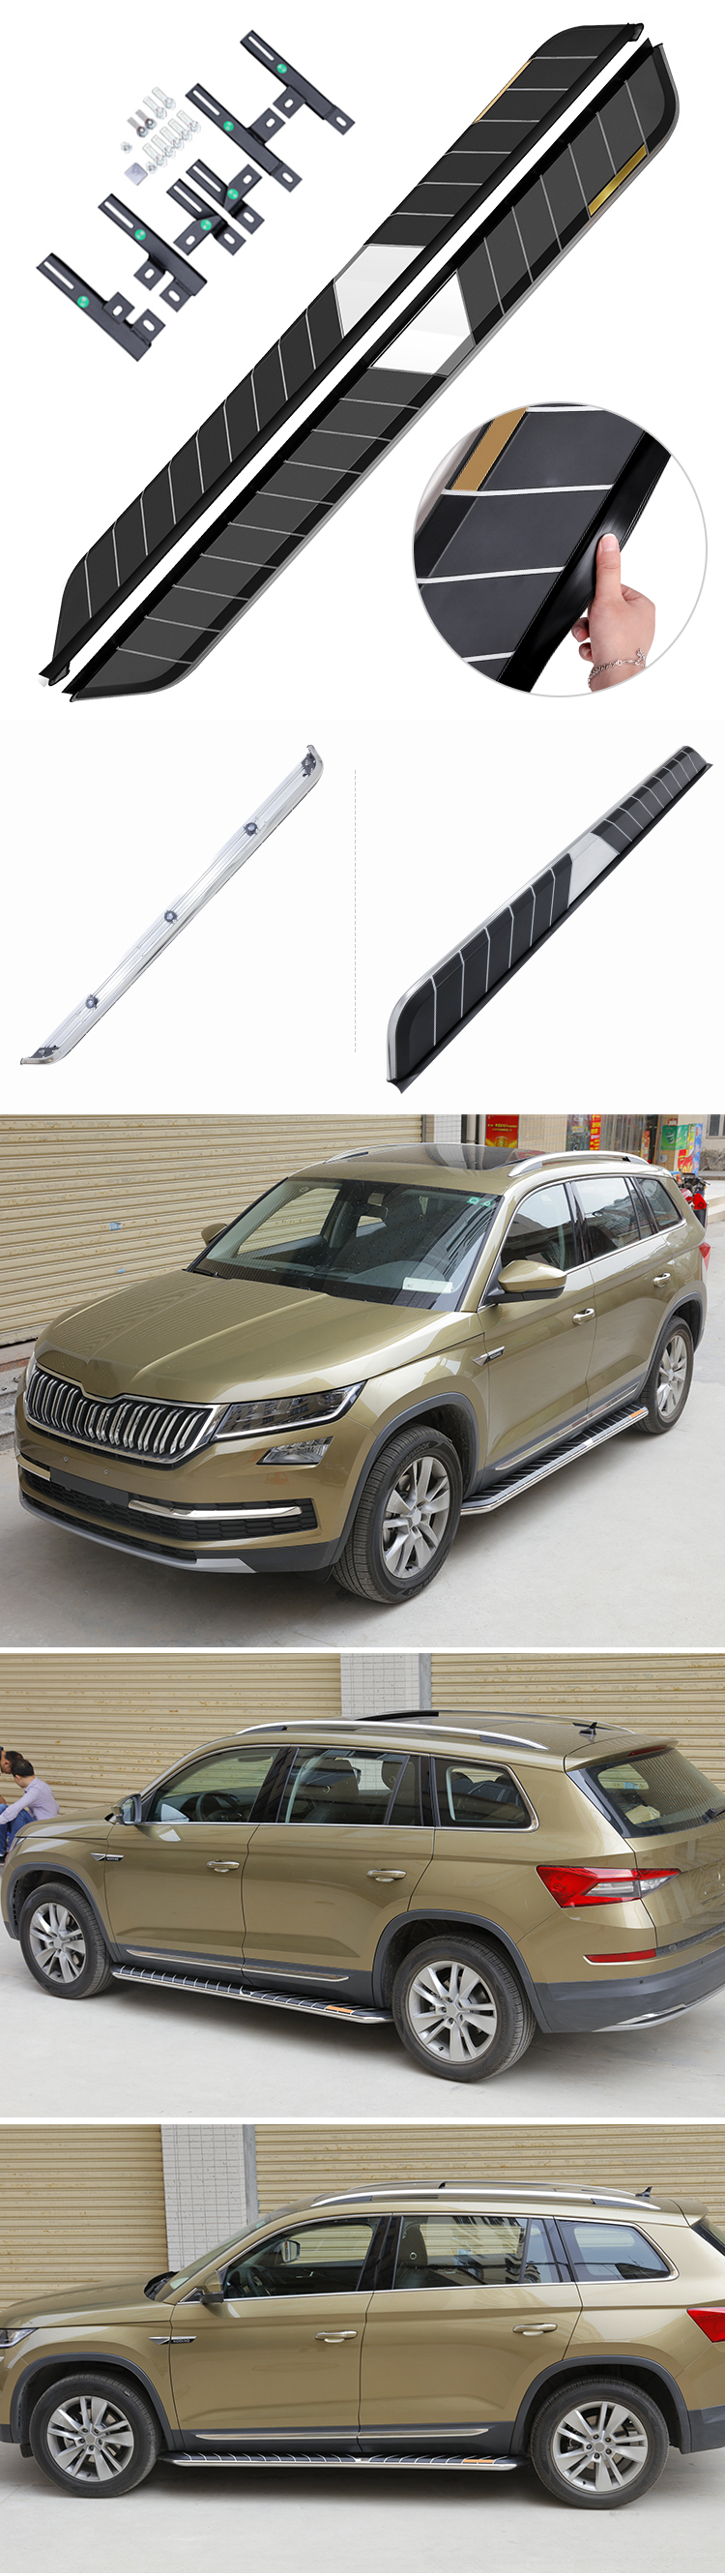 Wholesale Resale Sway Running Board Used For 2019 2018 2017 Skoda Kodiaq Side Step Bar Accessories Buy Side Step Kodiaq Kodiaq Side Step Kodiaq Product On Alibaba Com